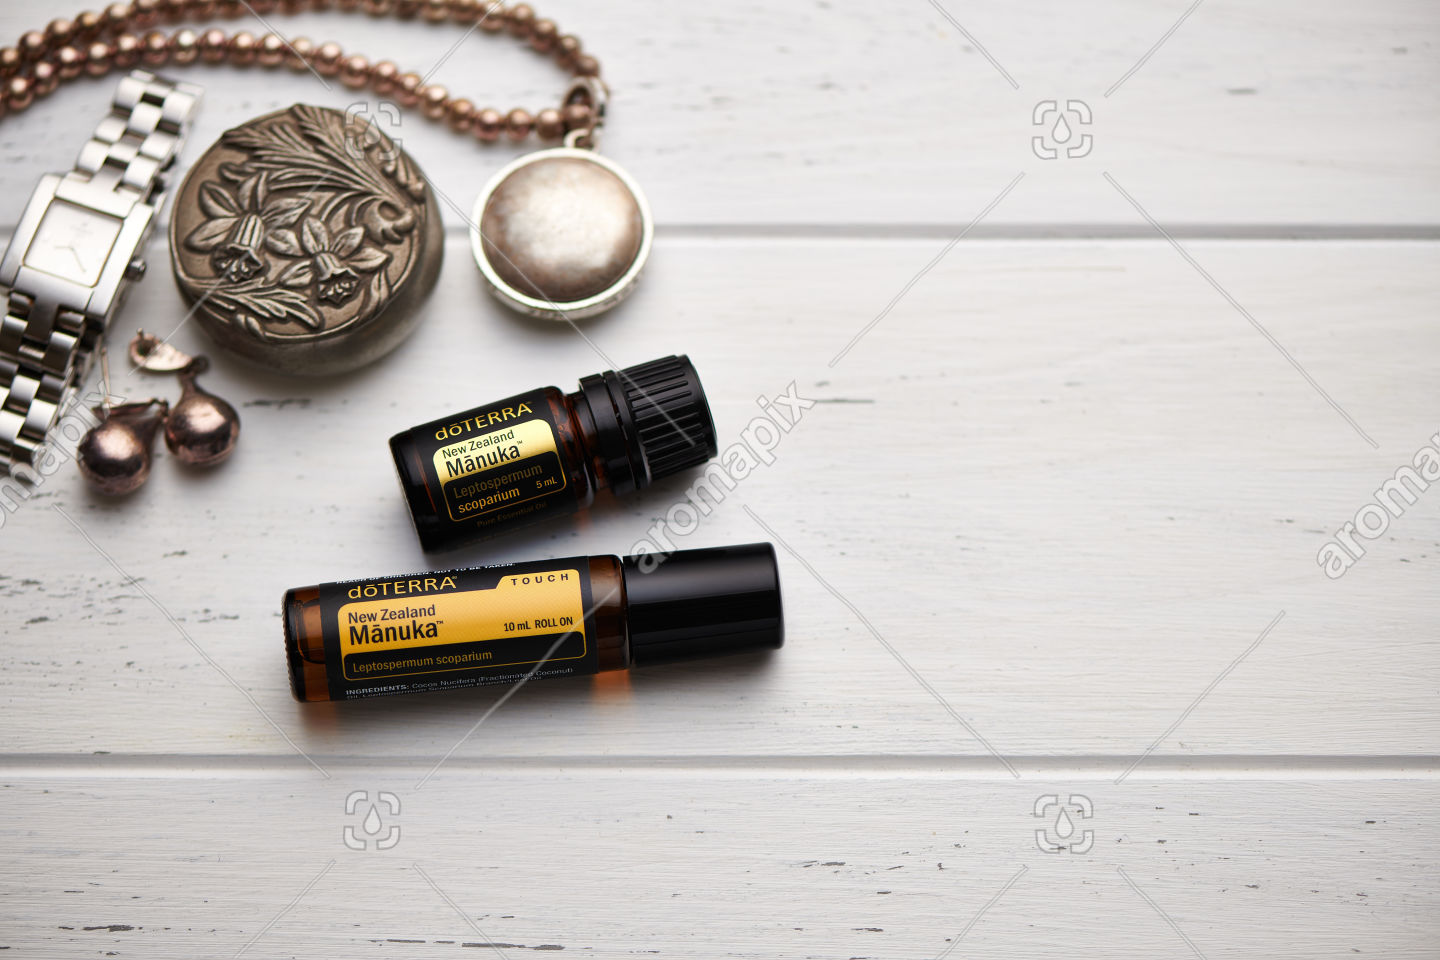 doTERRA Manuka and Manuka Touch on rustic background